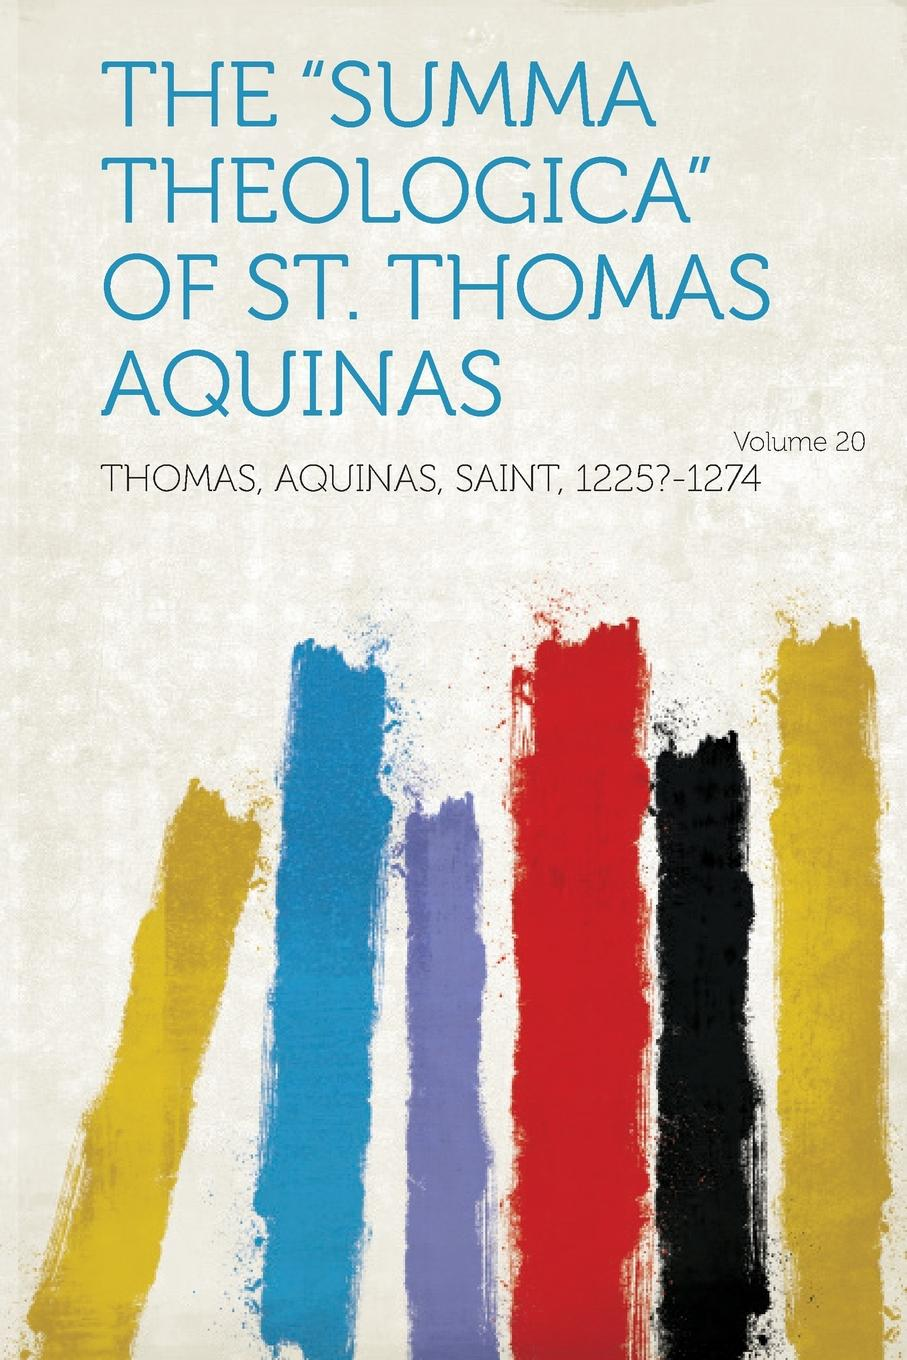 Thomas Aquinas The Summa Theologica of St. Thomas Aquinas Volume 20 aquinas saint thomas aquinas ethicus or the moral teaching of st thomas a translation of the principle portions of the second part of the summa theologica with notes